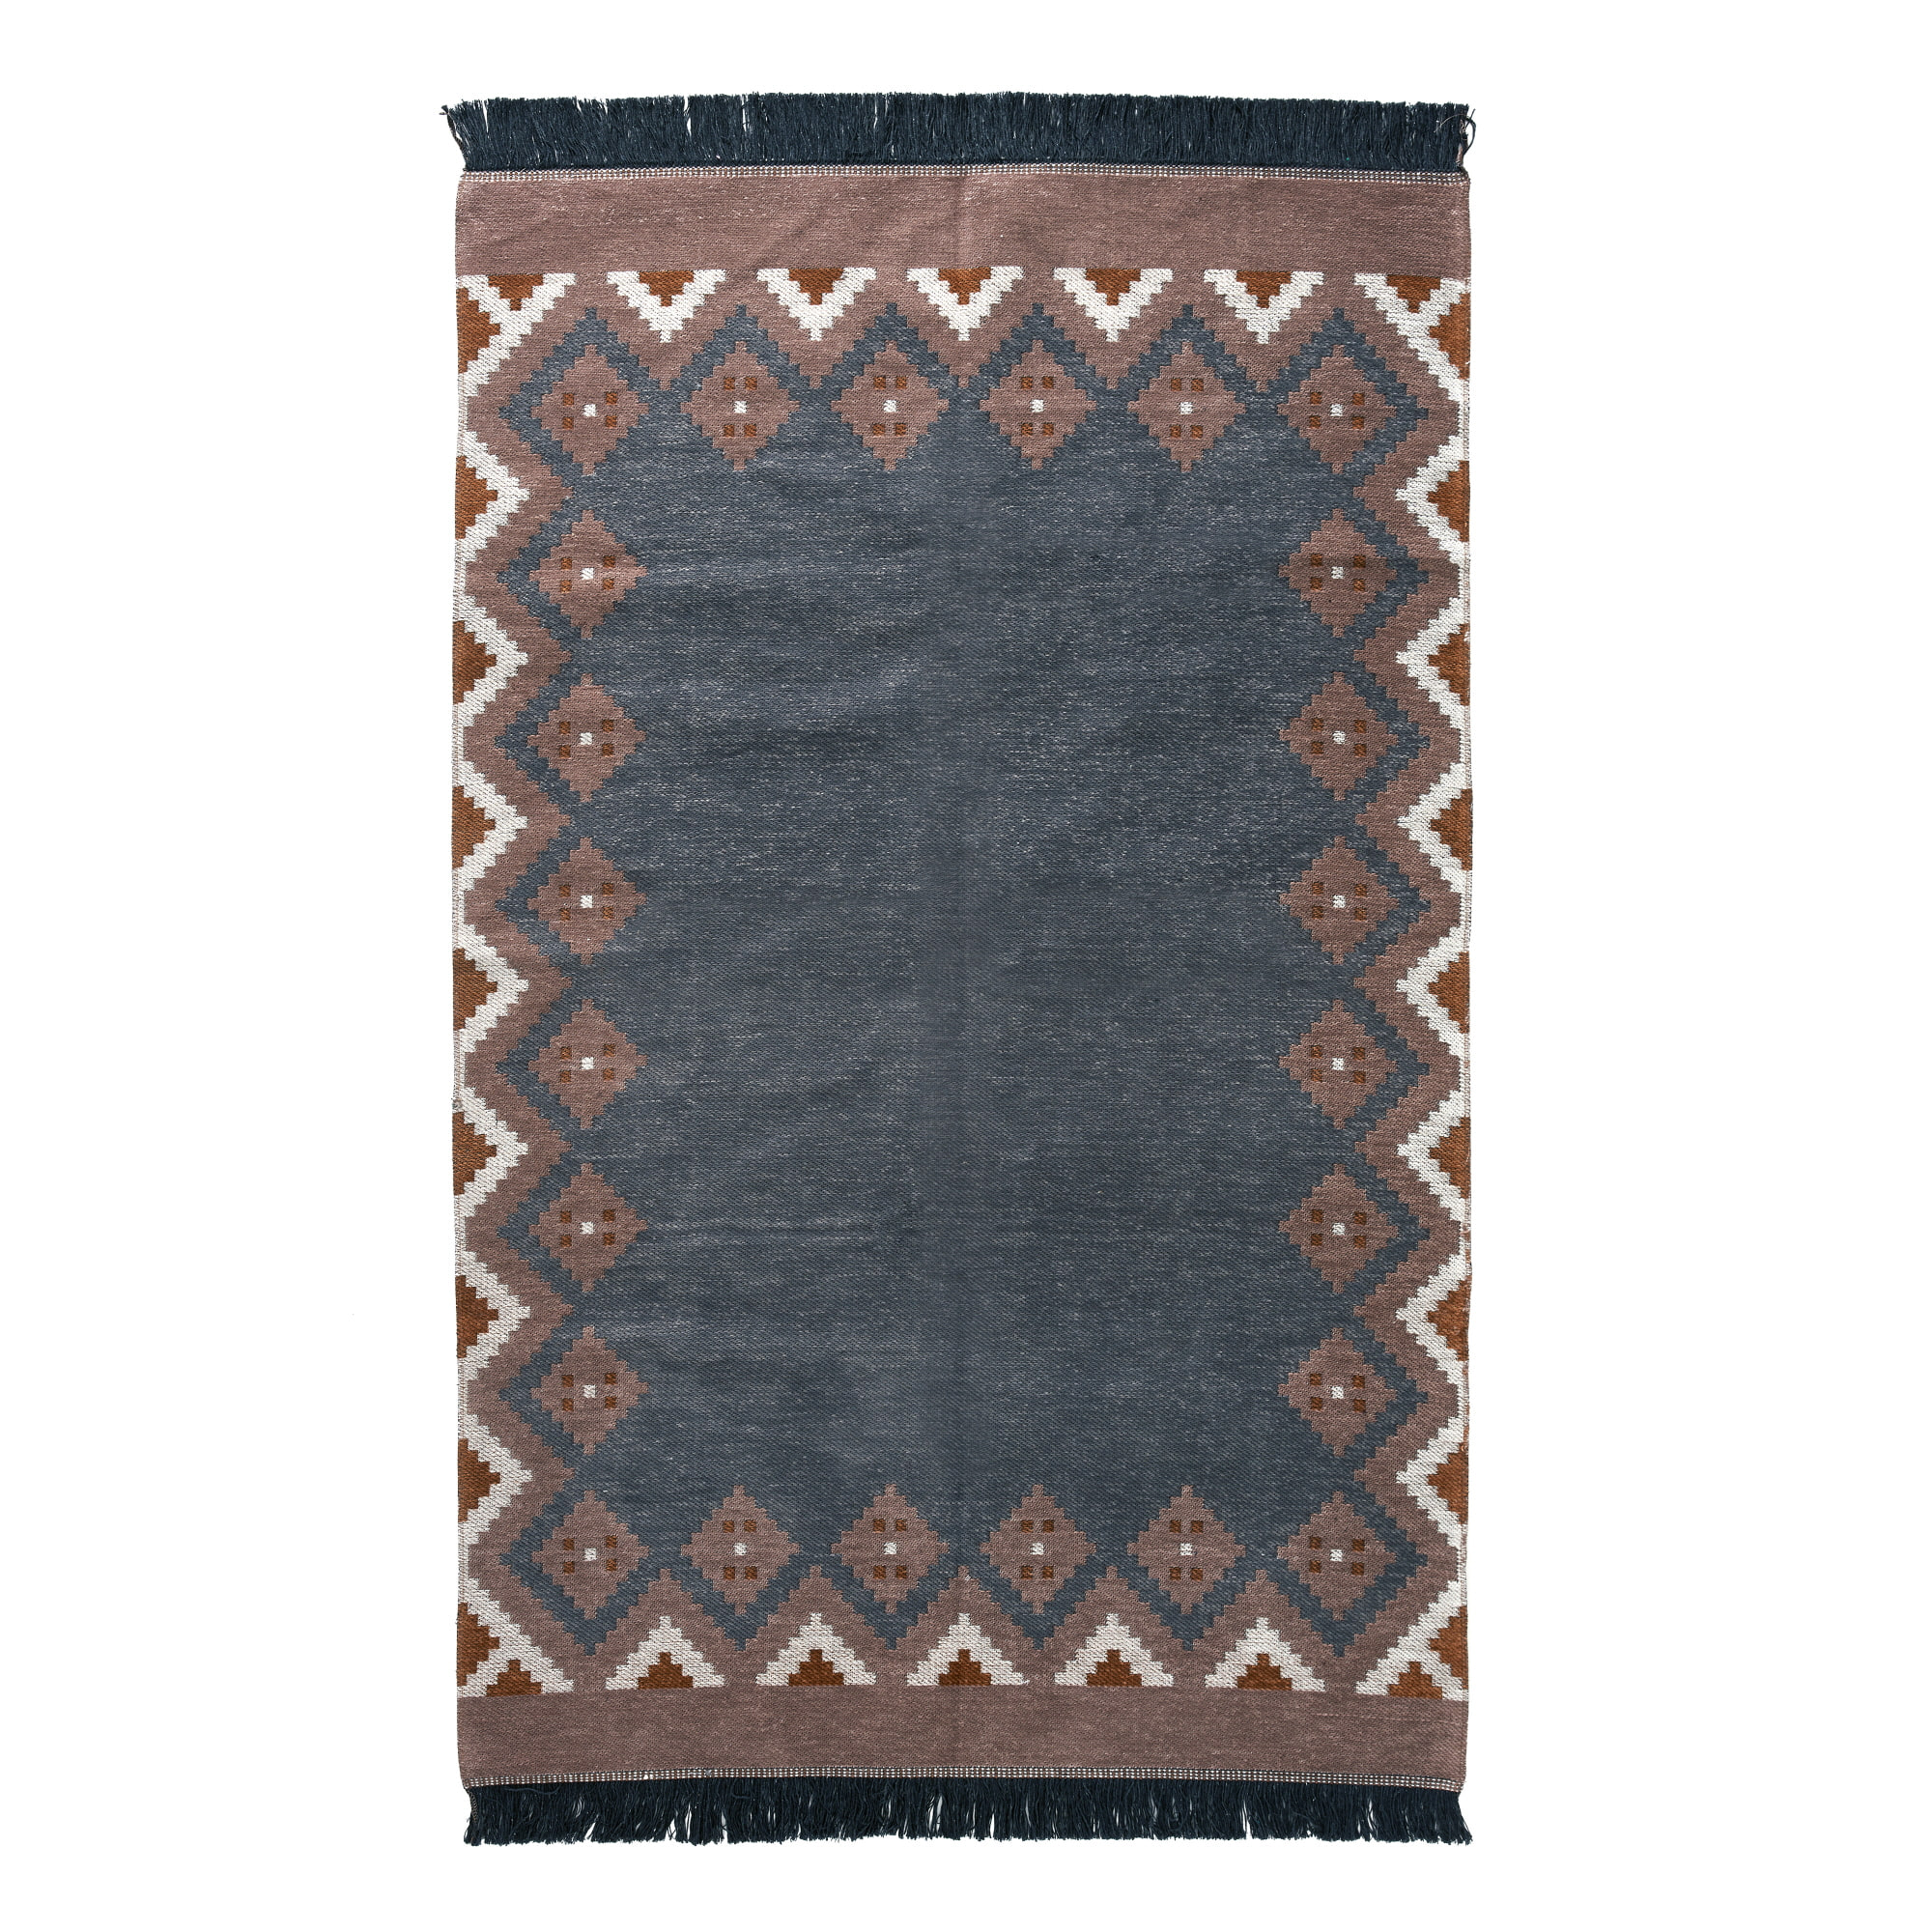 KILIM RUG(L) - gray brown